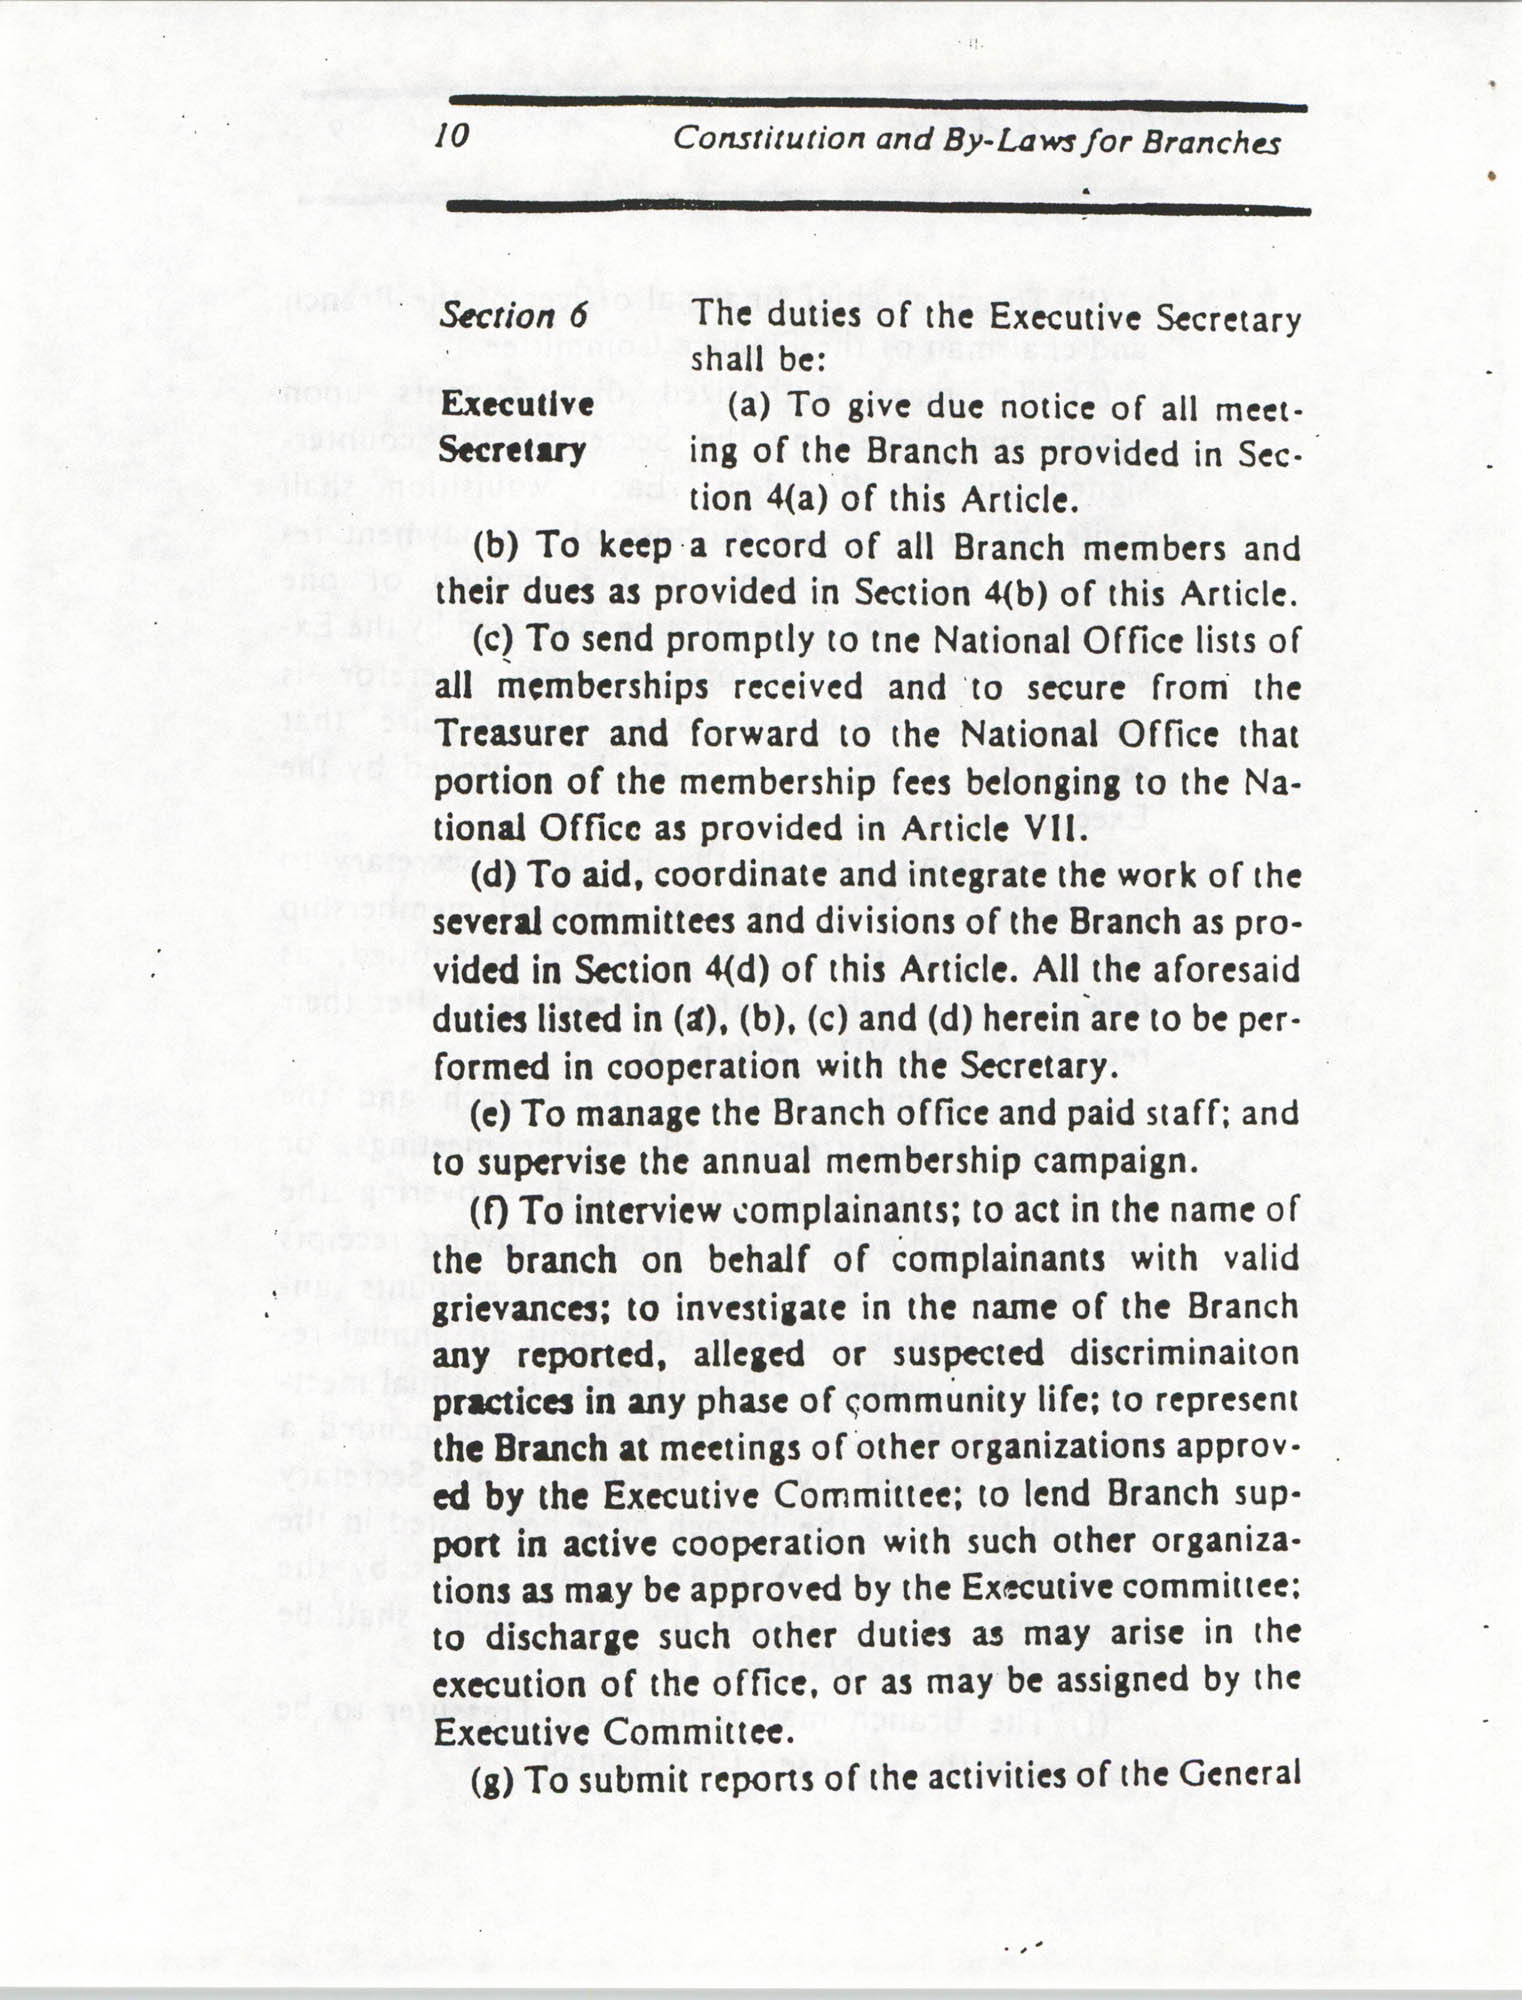 Constitution and By-Laws for Branches of the NAACP, March 1992, Page 10